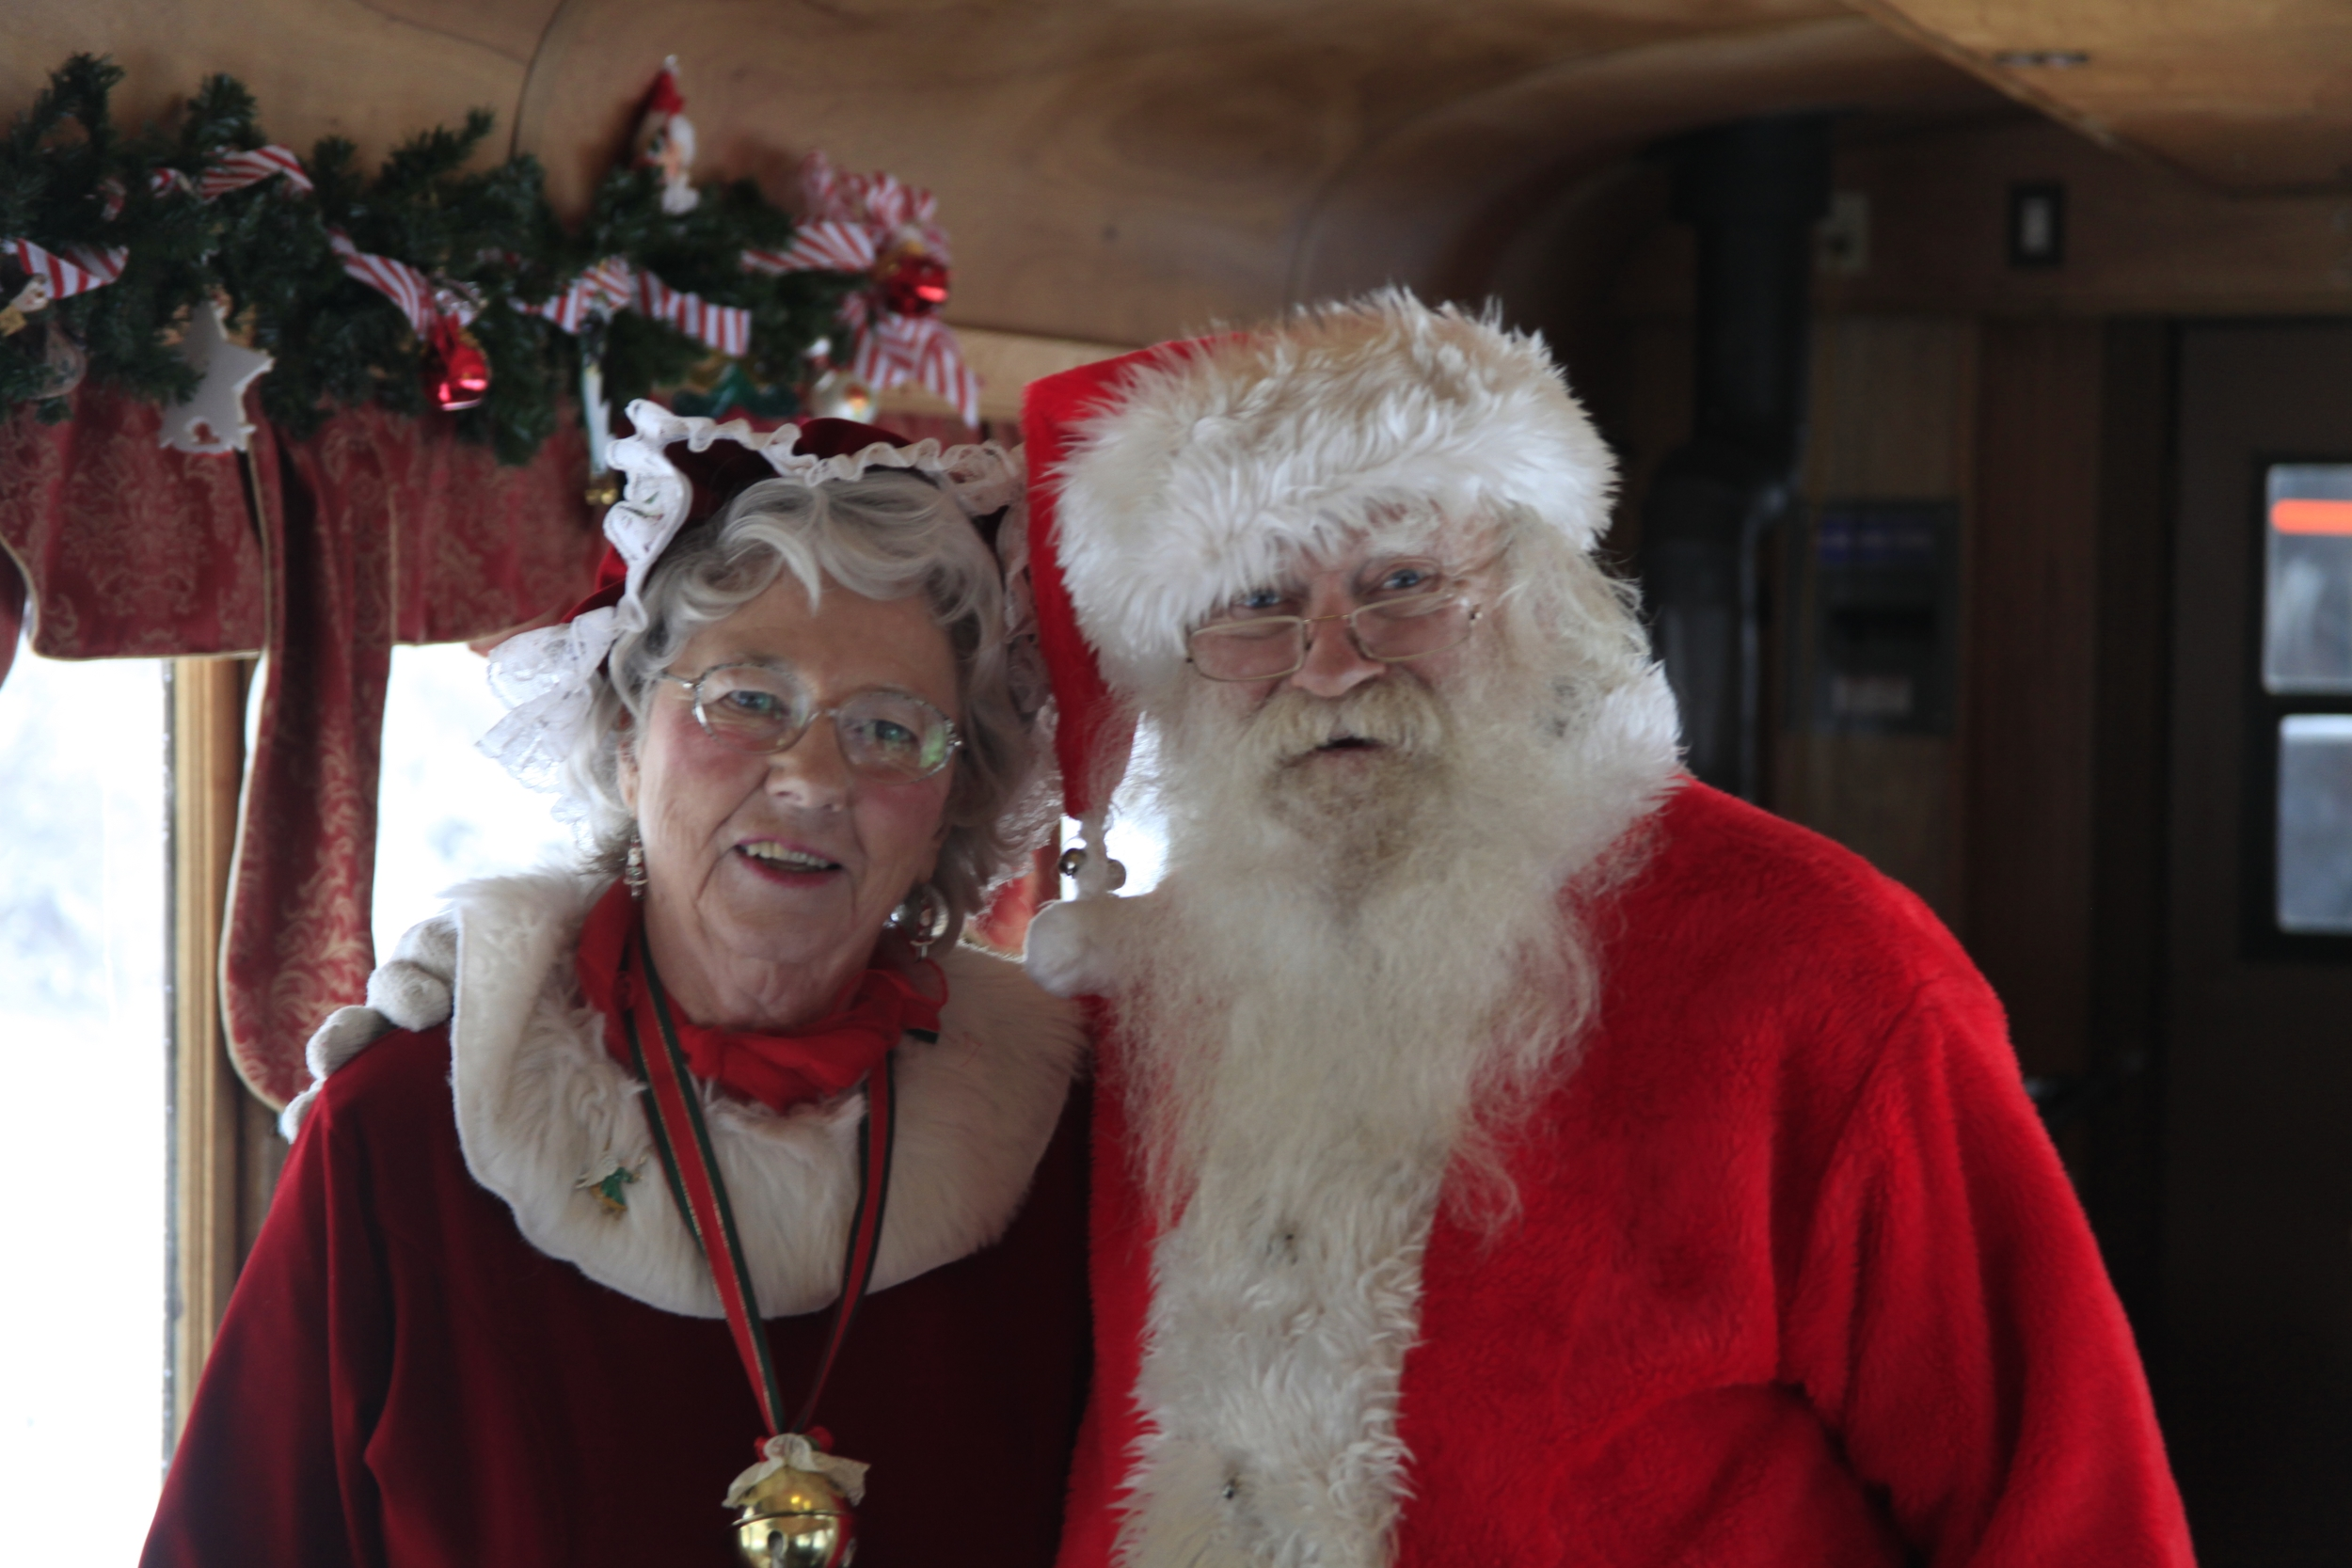 Santa and Mrs. Claus Aboard the Parlor Car Tour during Santa's North Pole adventure, an amazing train ride offered at the Georgetown Loop Railroad throughout the holiday season.